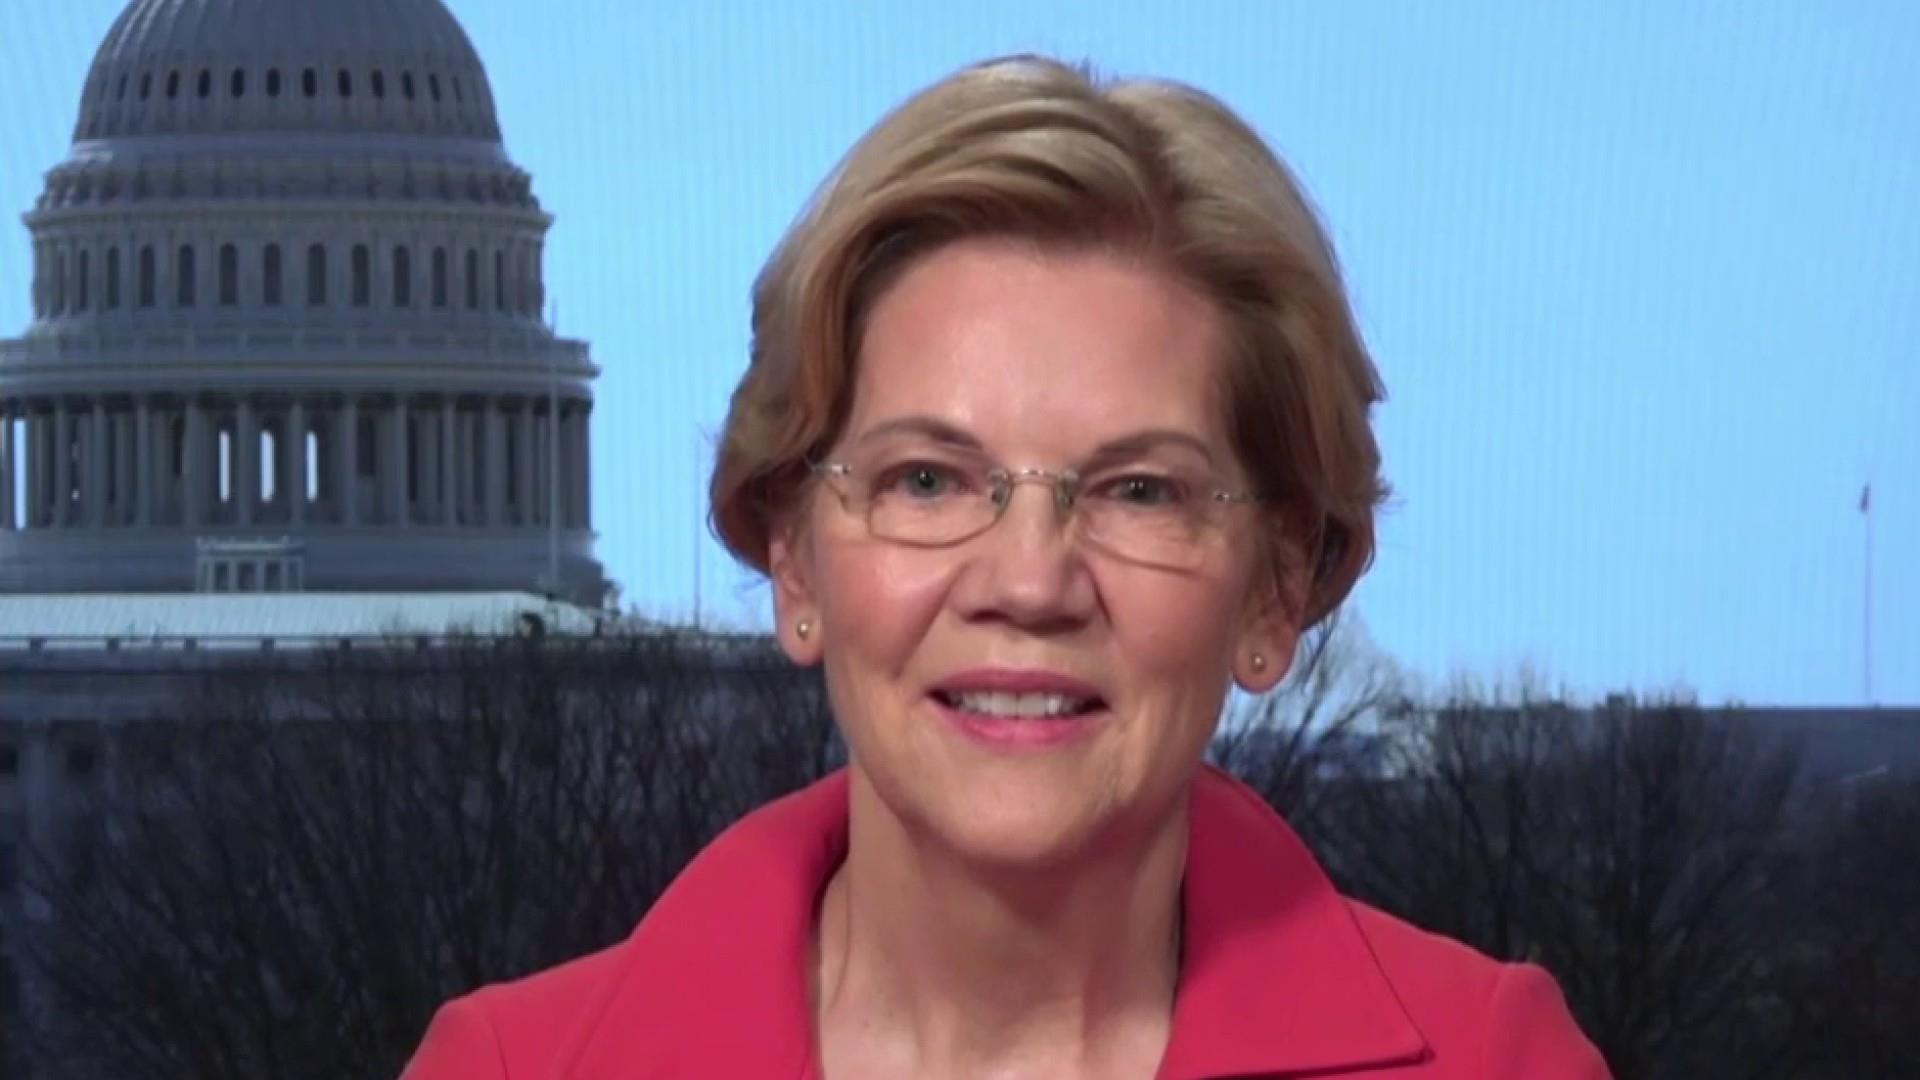 Sen. Warren on new corporate tax plan: Markets without rules are theft